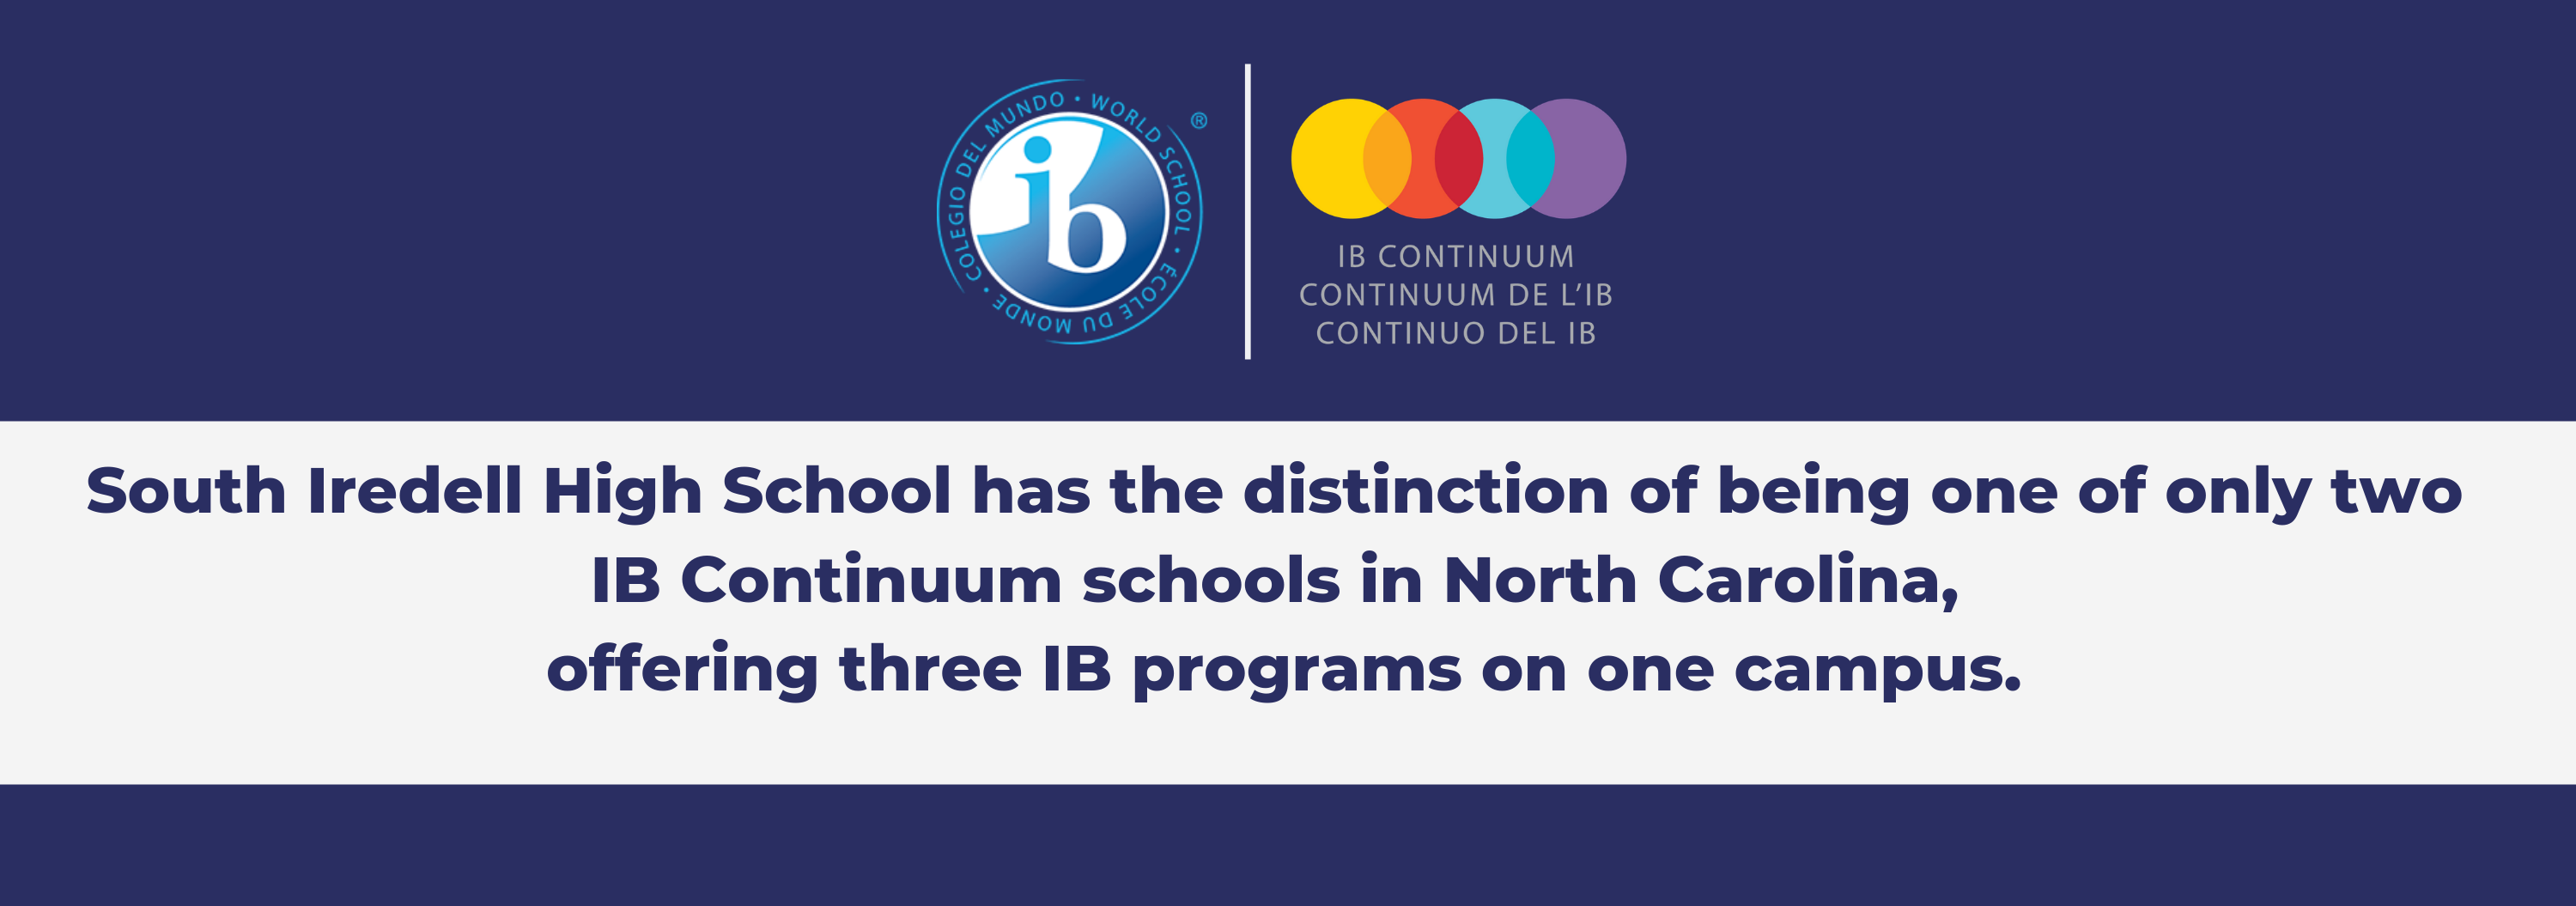 INTERNATIONAL BACCALAUREATE PROGRAMMES - South Iredell High